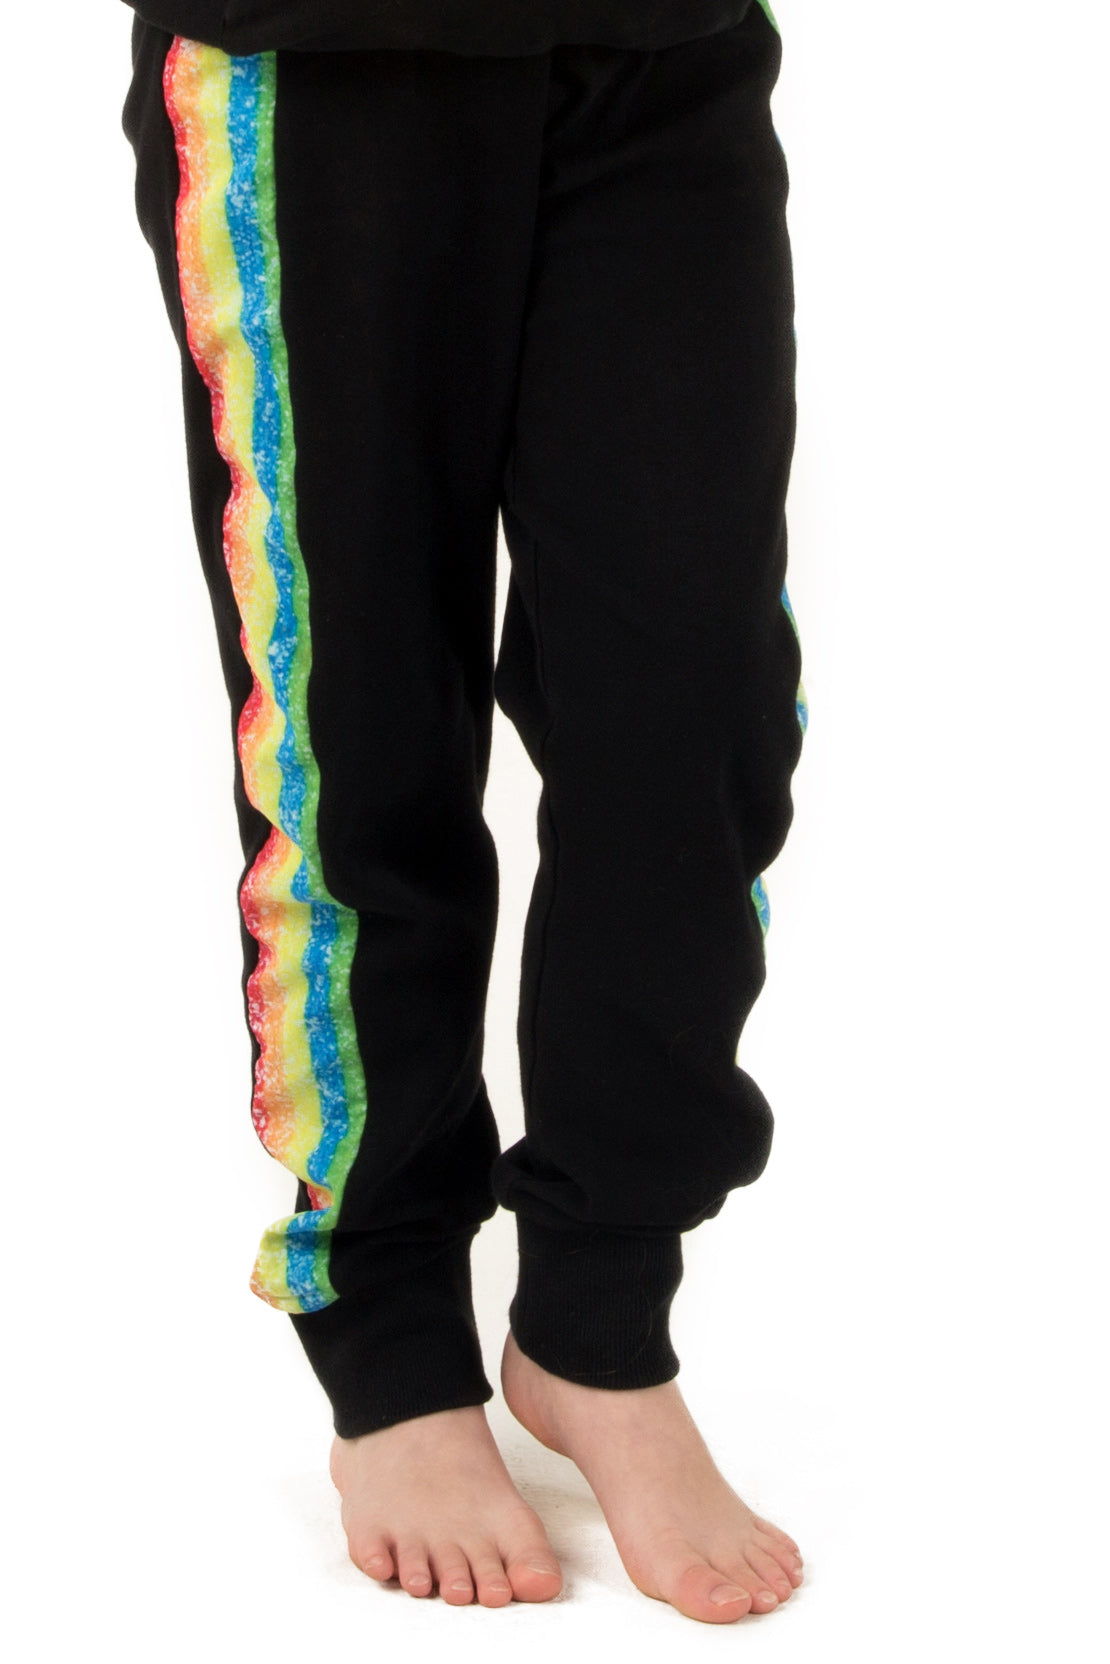 Extreme Rainbow Sweatpants - Youth